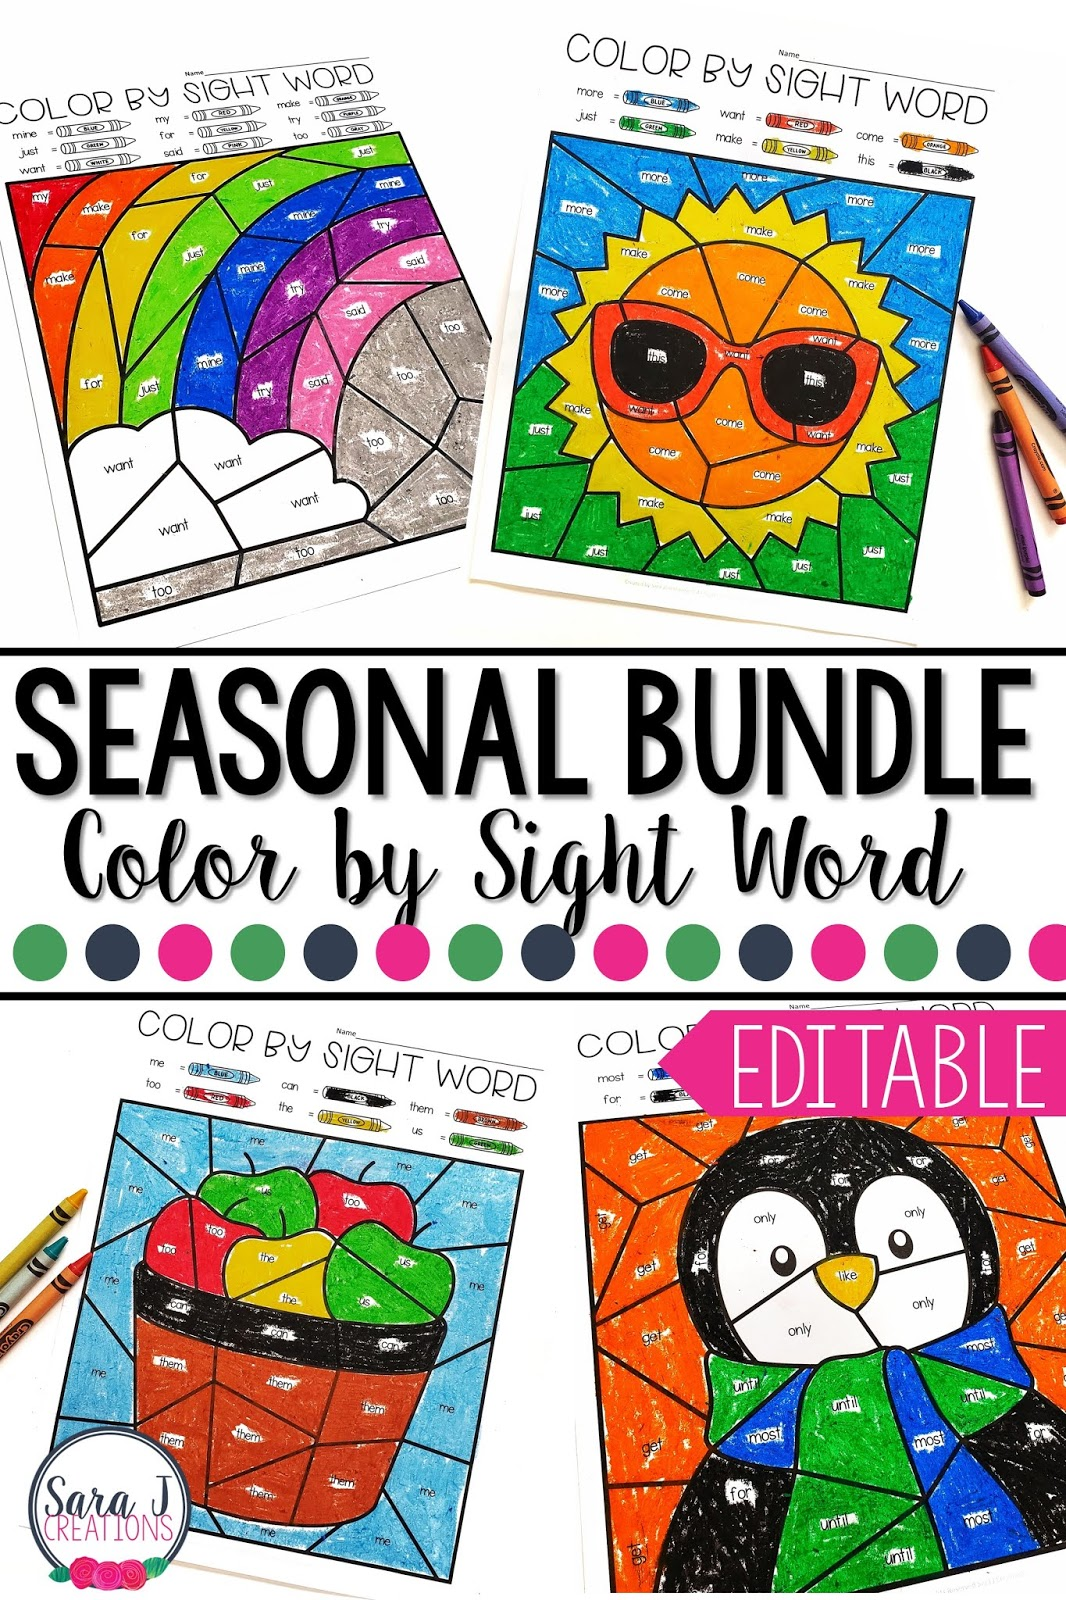 Editable Color by Sight Word Bundle!!!! Perfect for making sight word practice fun and meaningful for your students all year long. No matter what sight words your students are working on, you can create personalized coloring worksheets in a snap! Winter, spring, summer and fall coloring pages right at your fingertips.